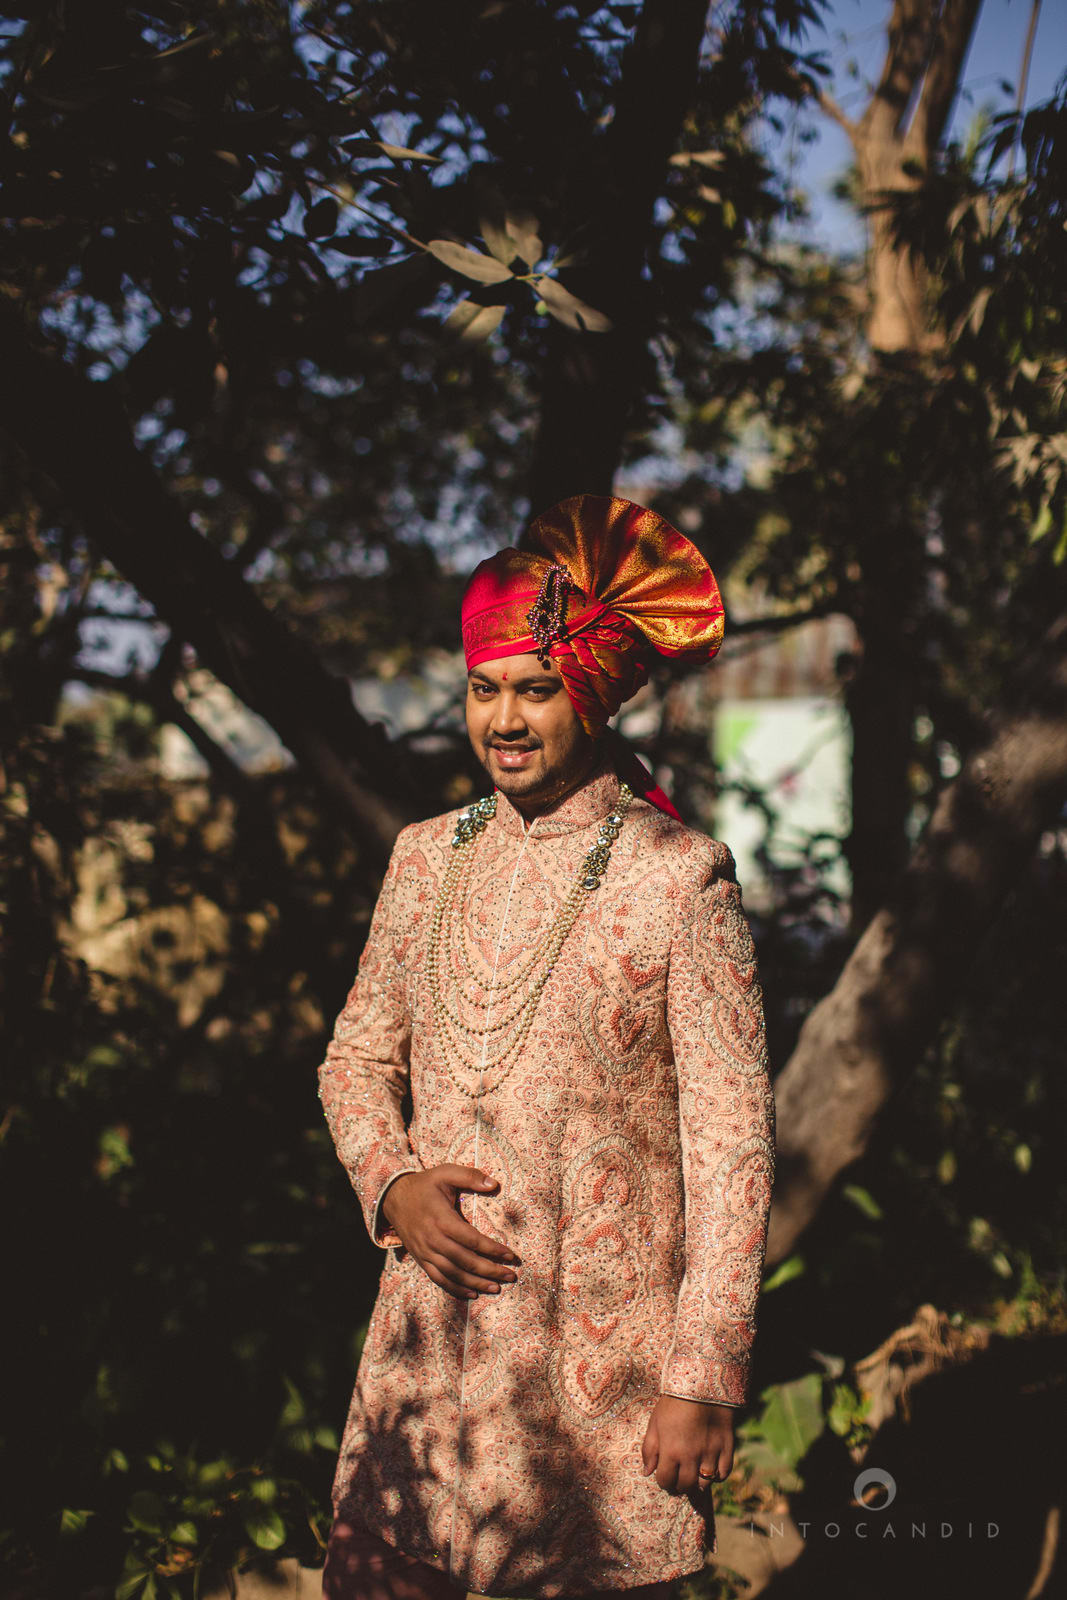 the royal groom!:into candid photography, sabyasachi couture pvt ltd